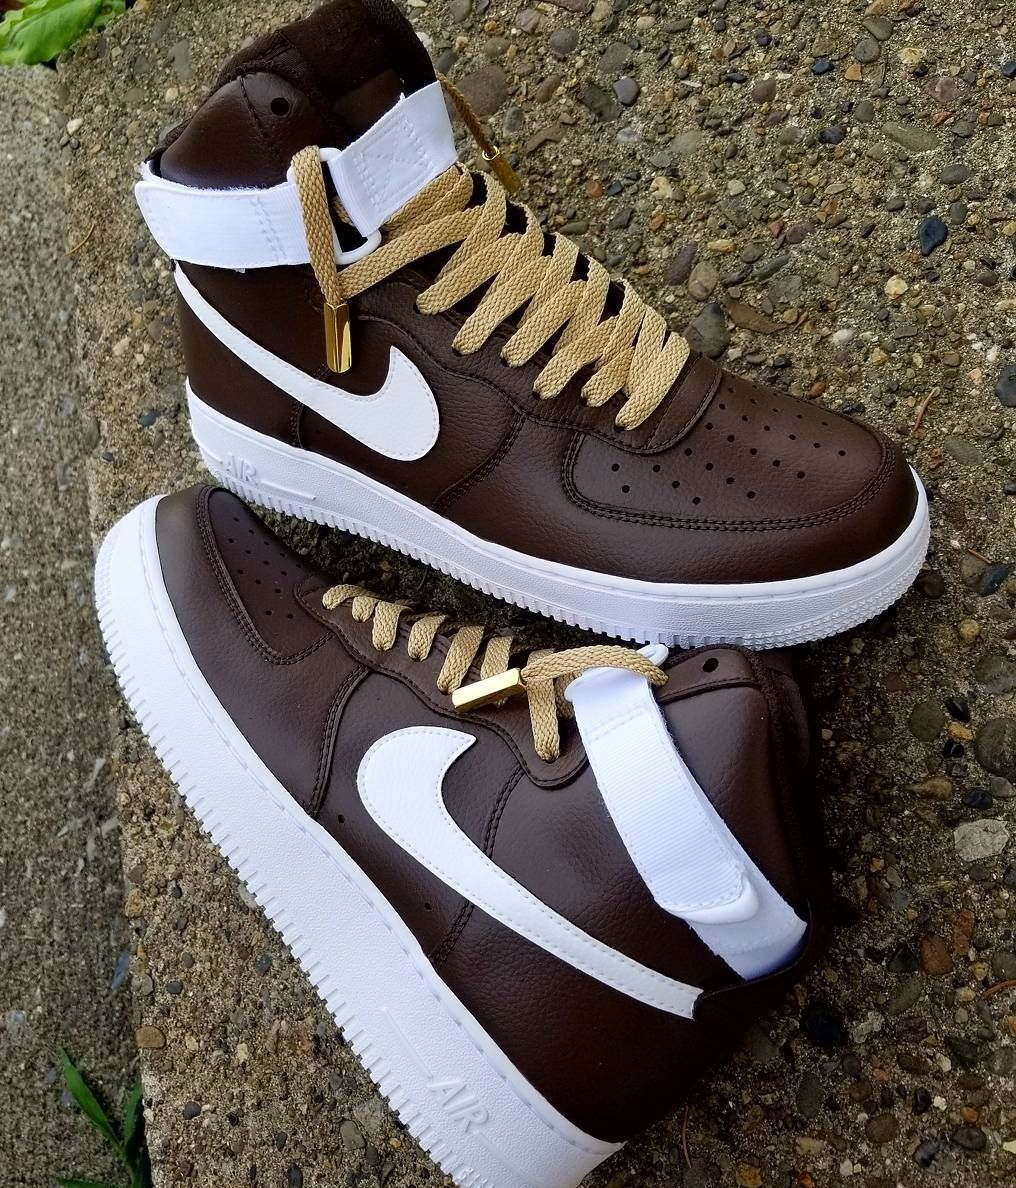 6ad51cf38d8 Nike Air Force 1 High Custom | Sneakers shoes and boots | Sneakers ...